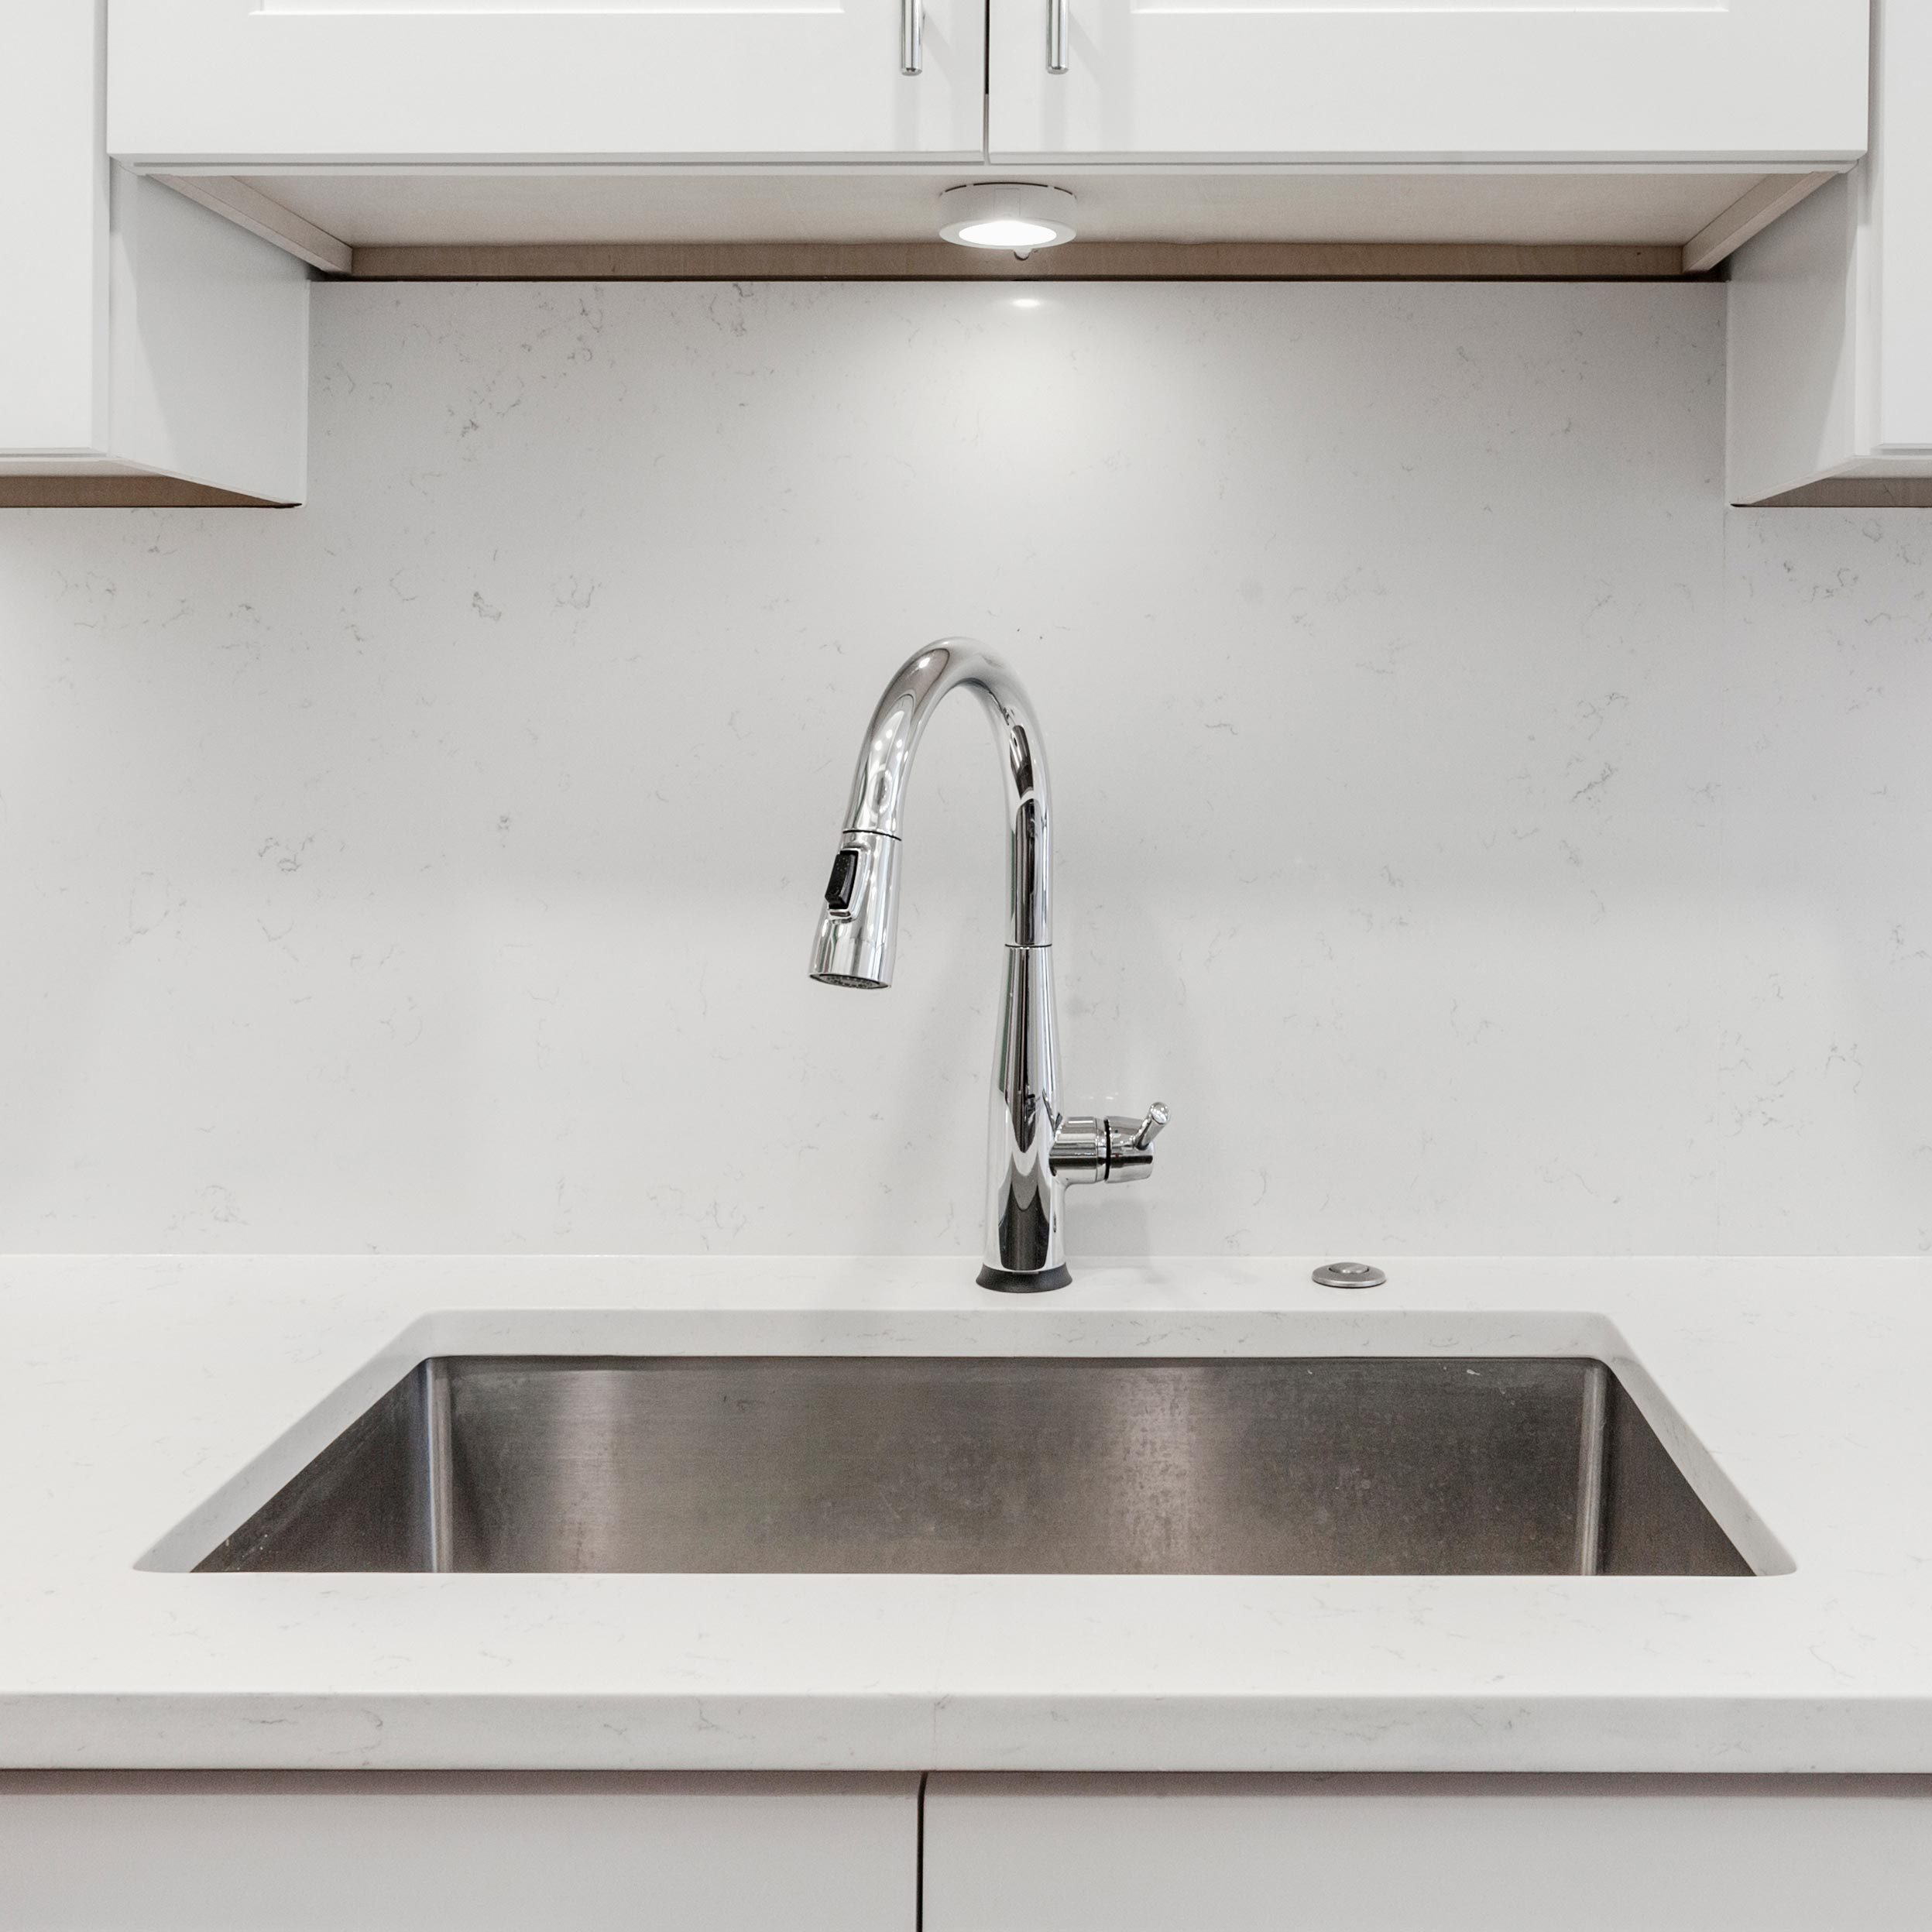 How To Clean A Stainless Steel Sink Reader S Digest